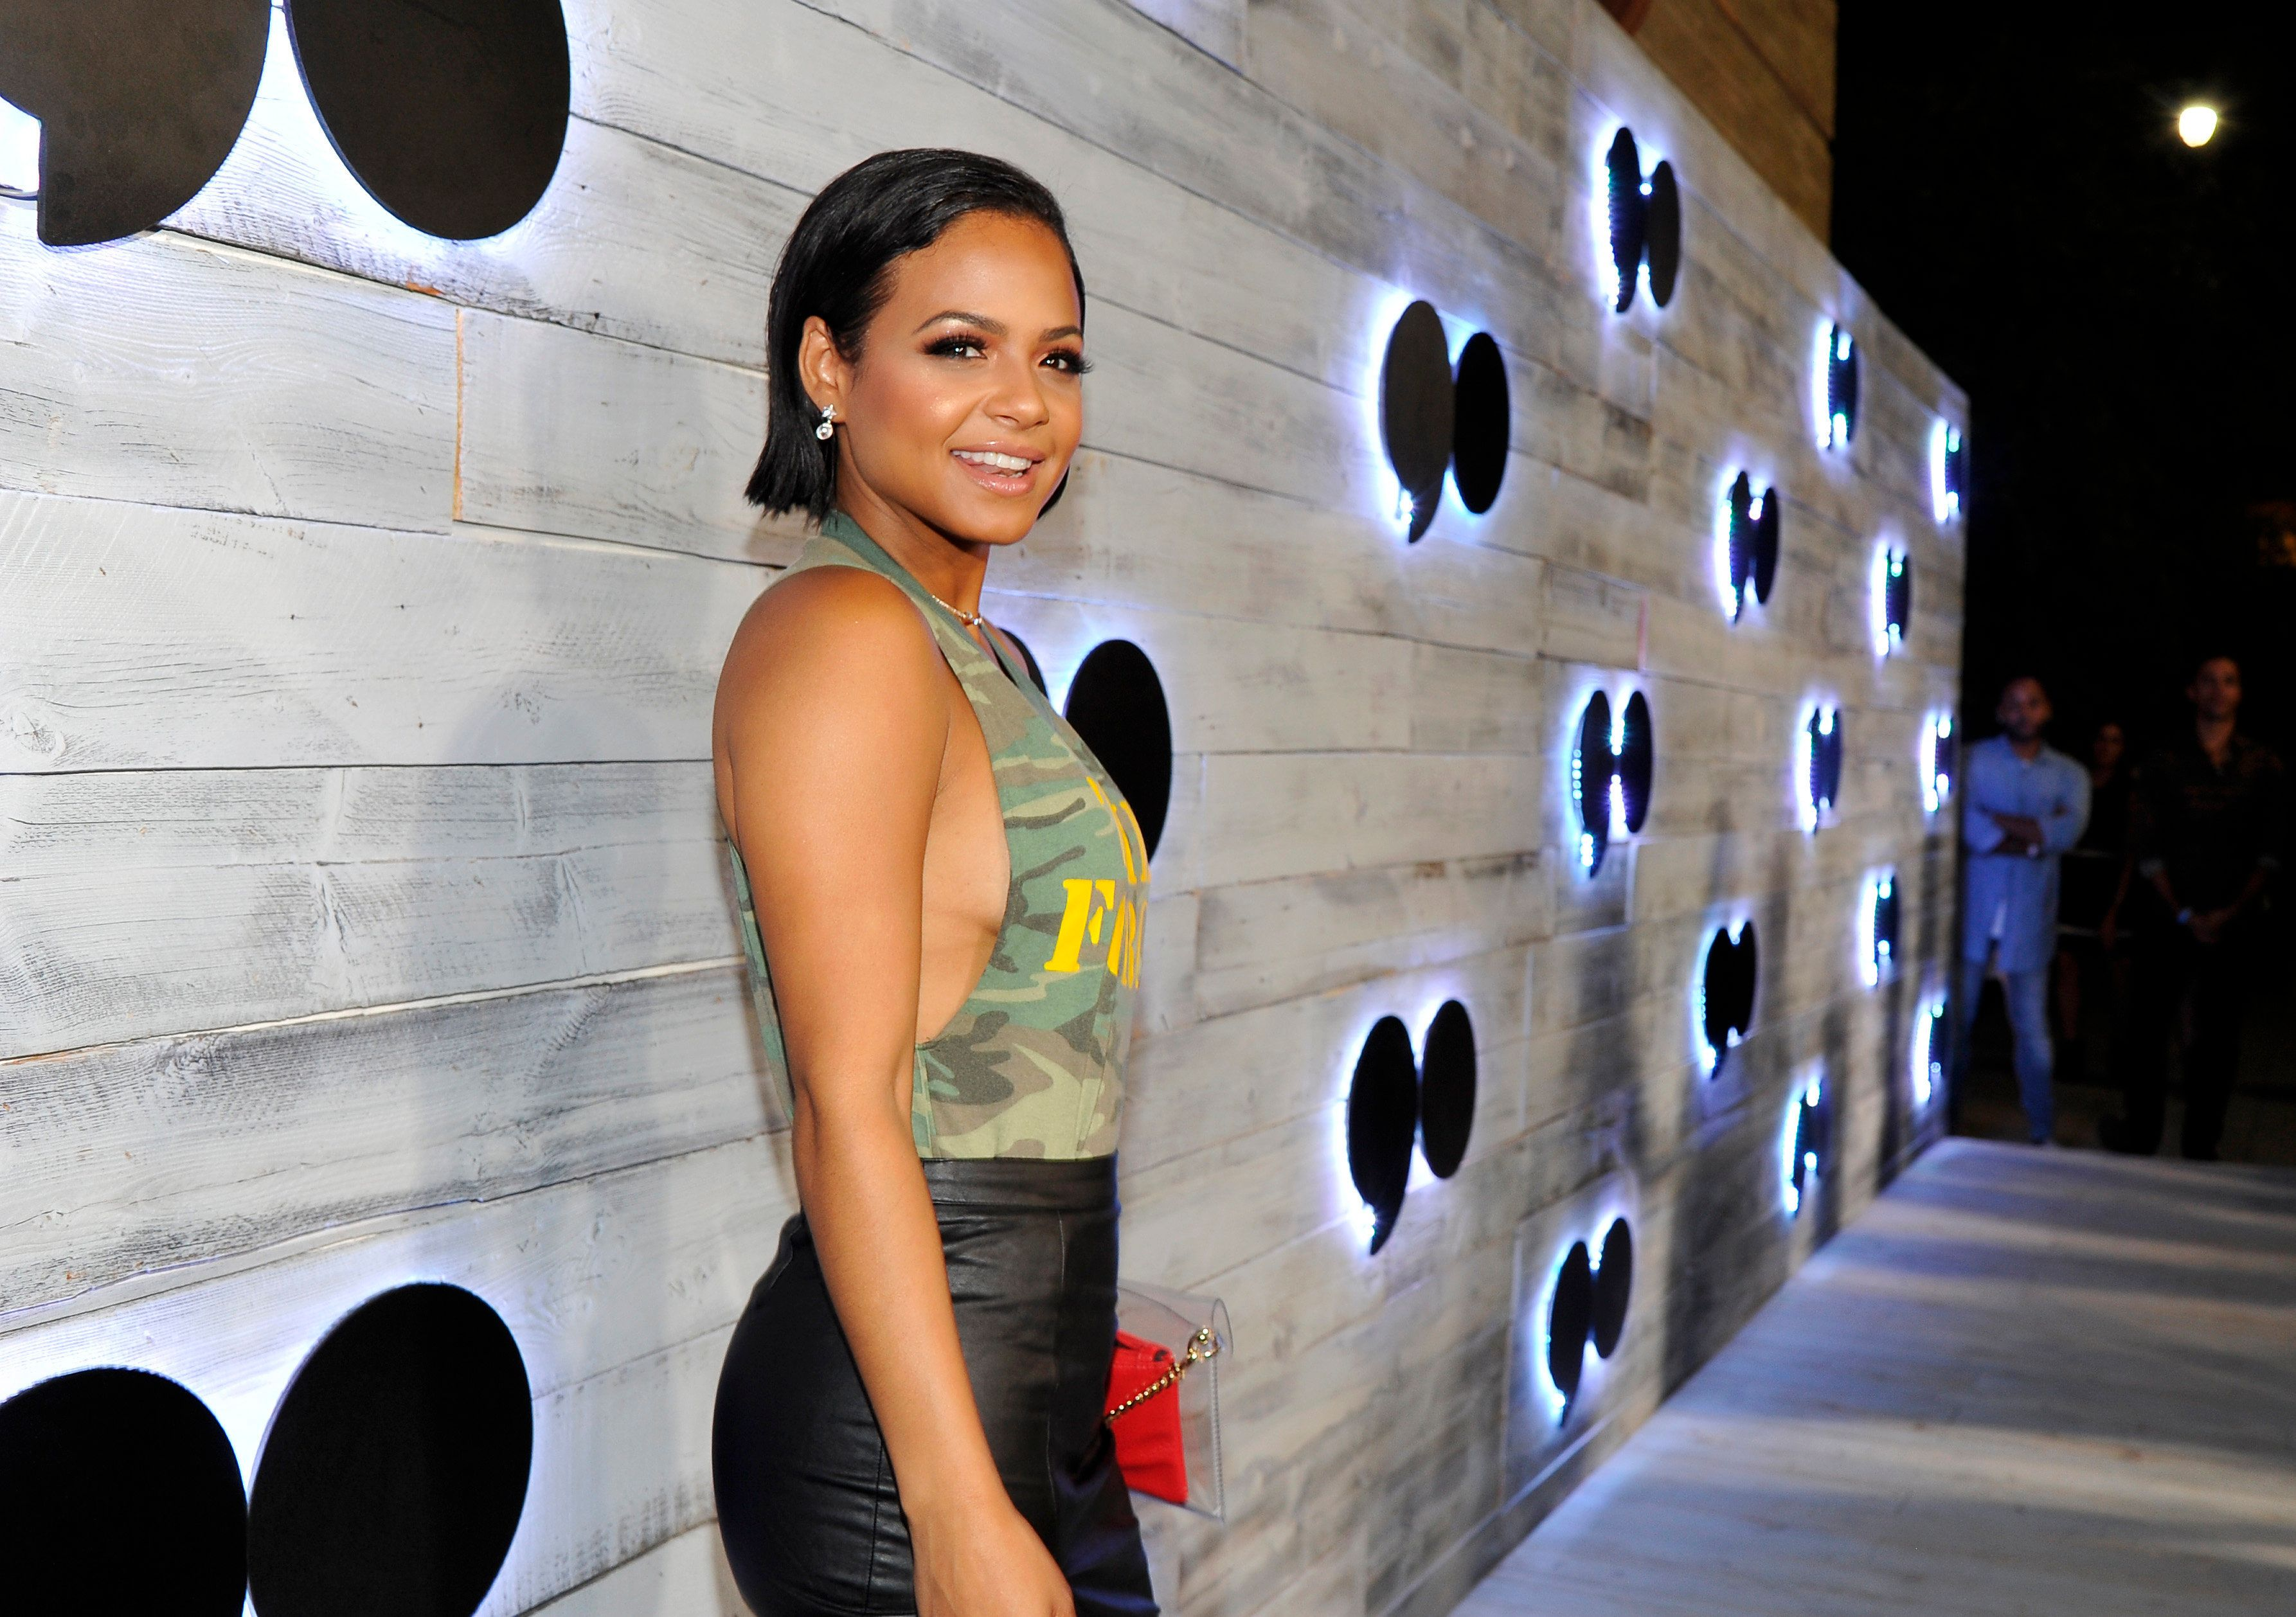 LOS ANGELES, CA - SEPTEMBER 24:  Singer Christina Milian attends the VIP sneak peek of the go90 Social Entertainment Platform at the Wallis Annenberg Center for the Performing Arts on September 24, 2015 in Los Angeles, California.  (Photo by John Sciulli/Getty Images for go90)